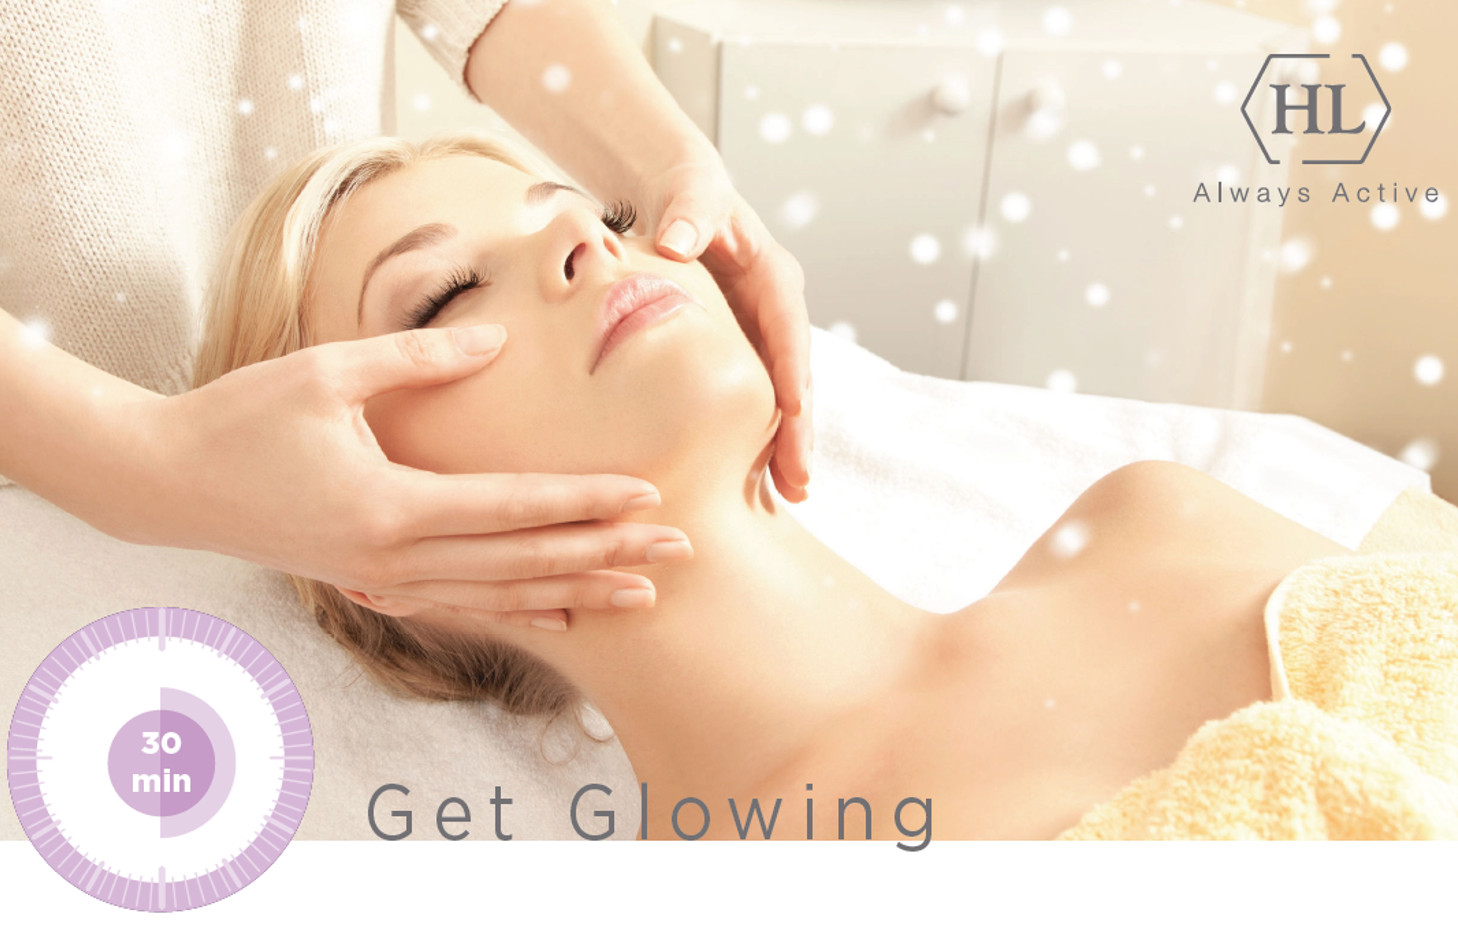 Get Glowing Express-Behandlung